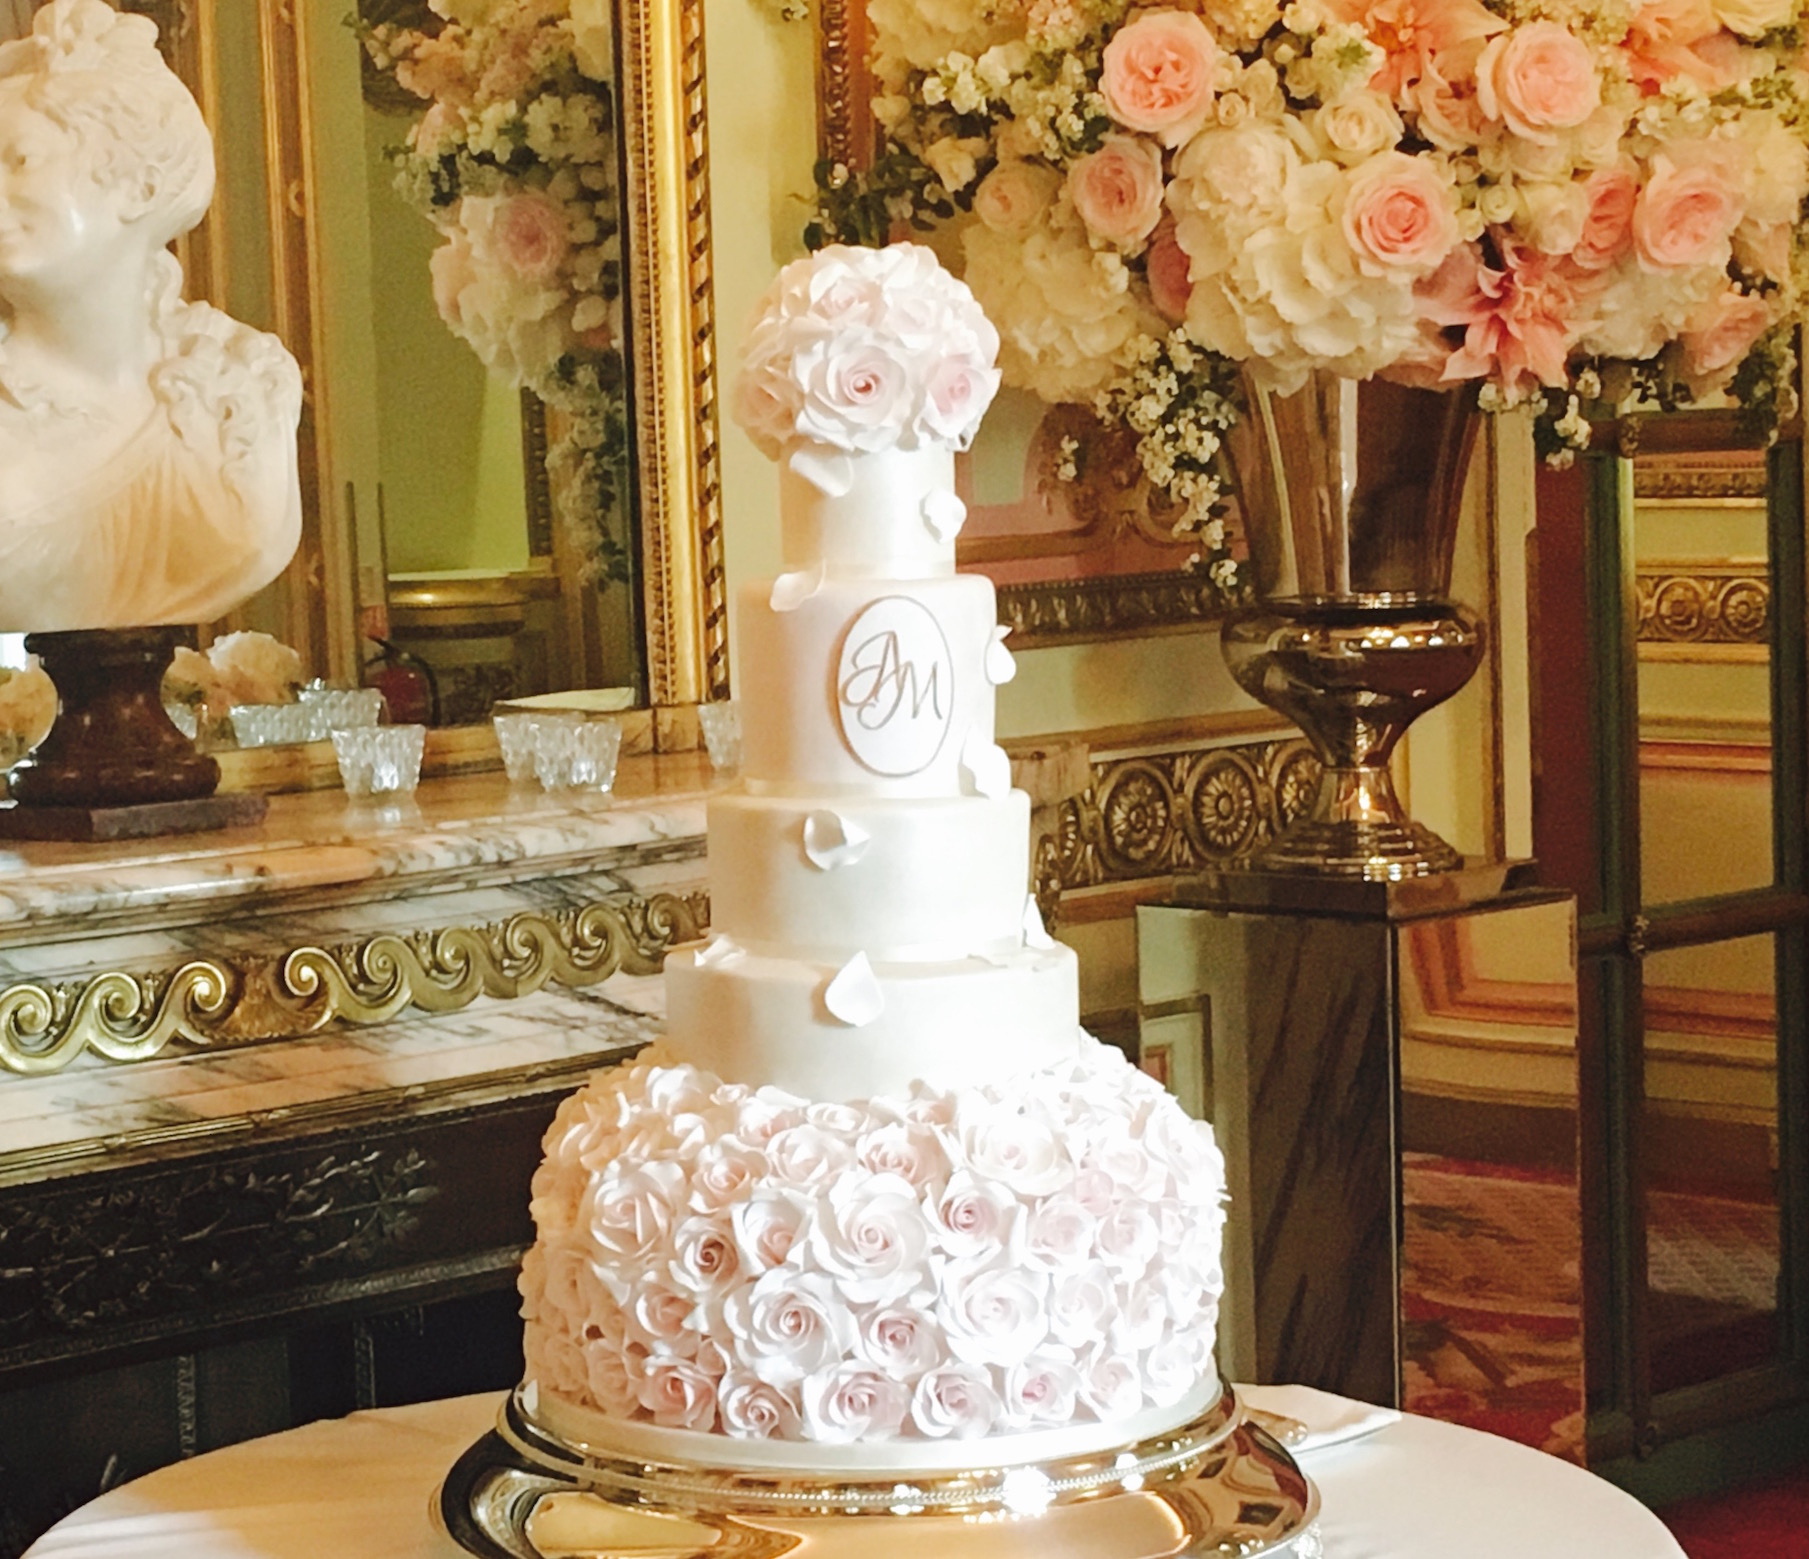 Hall of Cakes Luxury Wedding Cakes